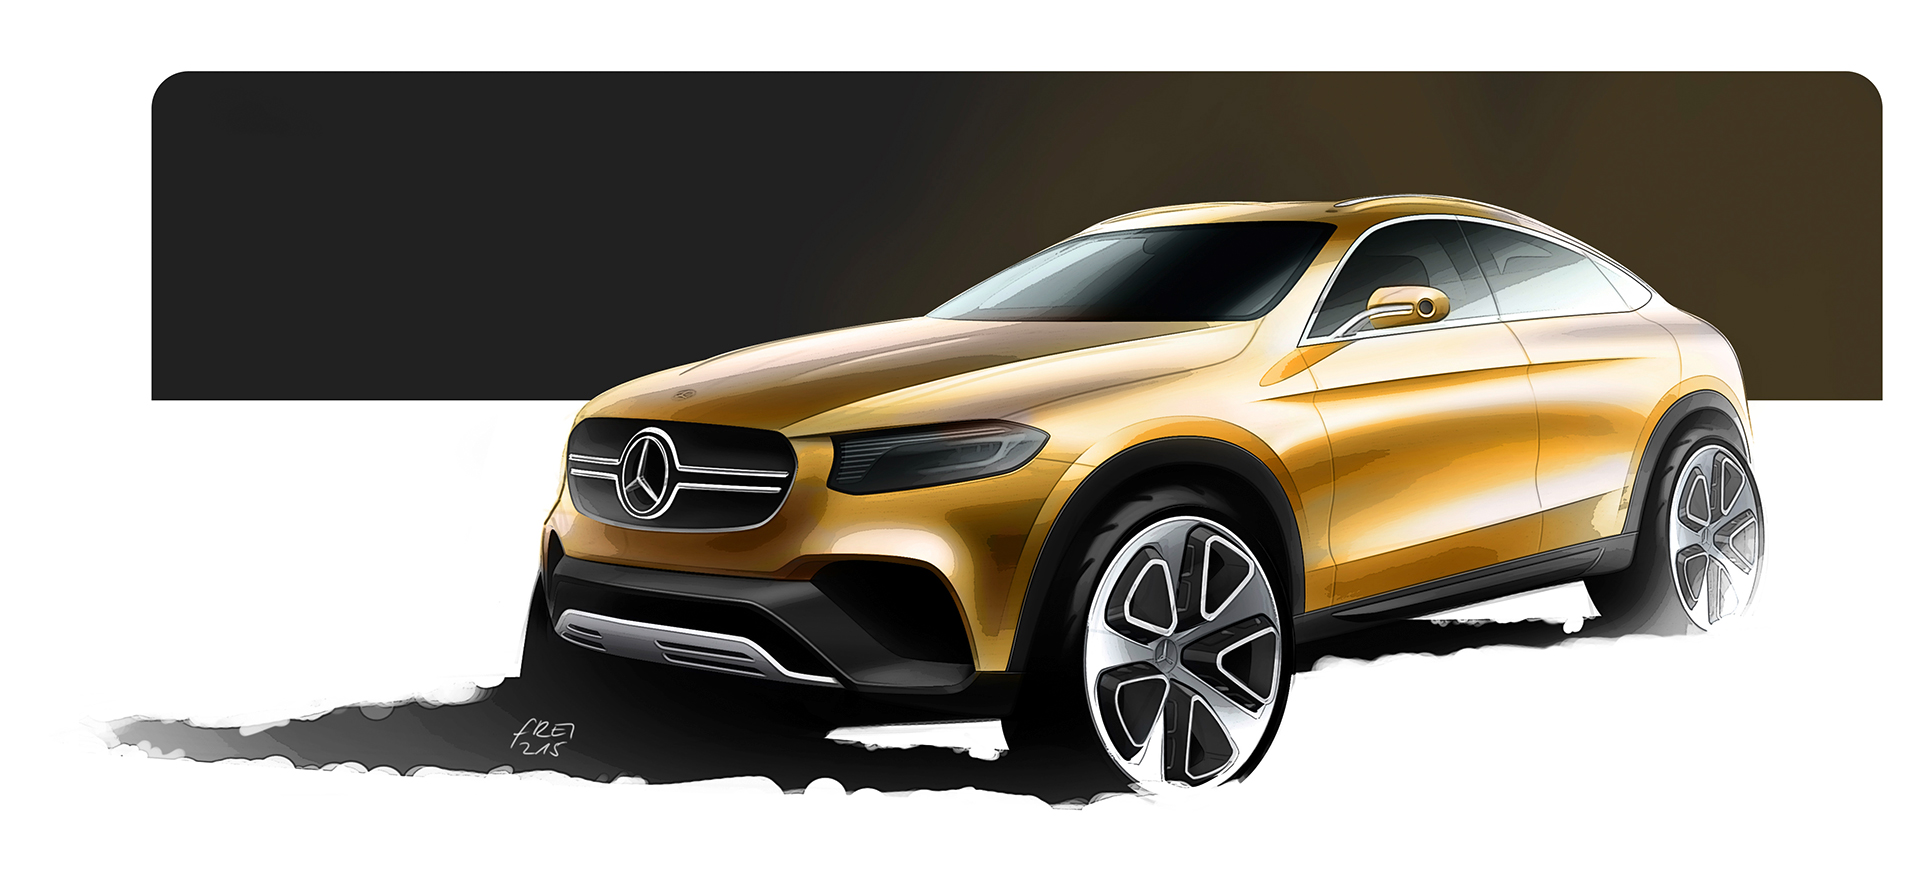 Mercedes-Benz Concept GLC Coupe - sketch - avant / front